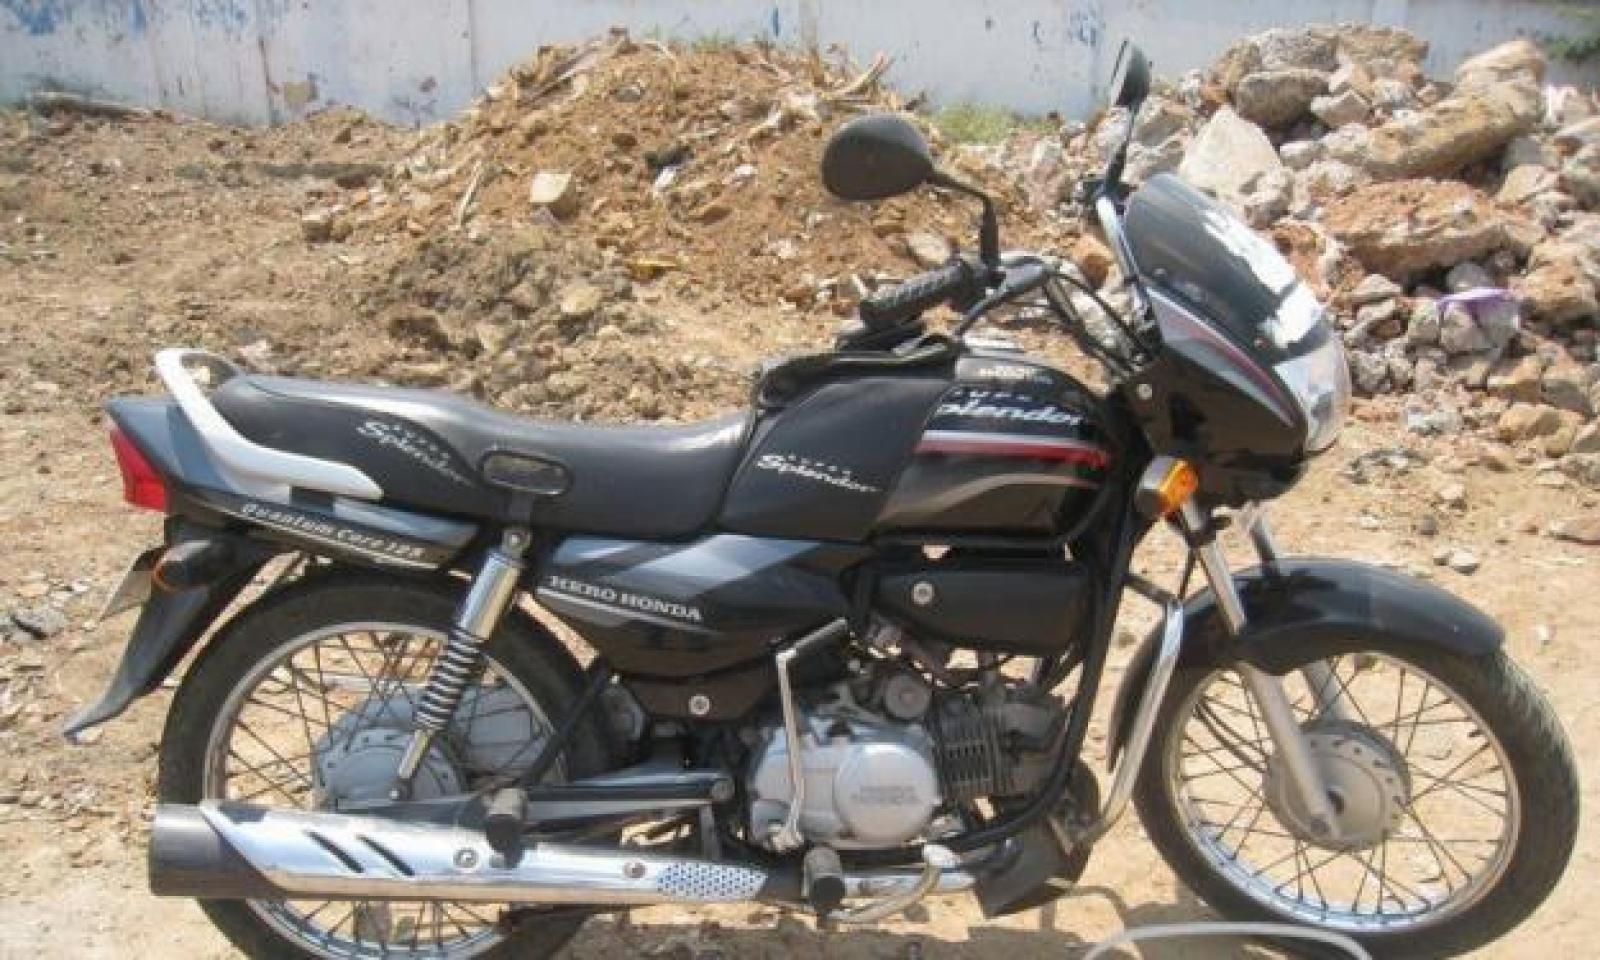 Hero Honda Splendor 2007 images #95891